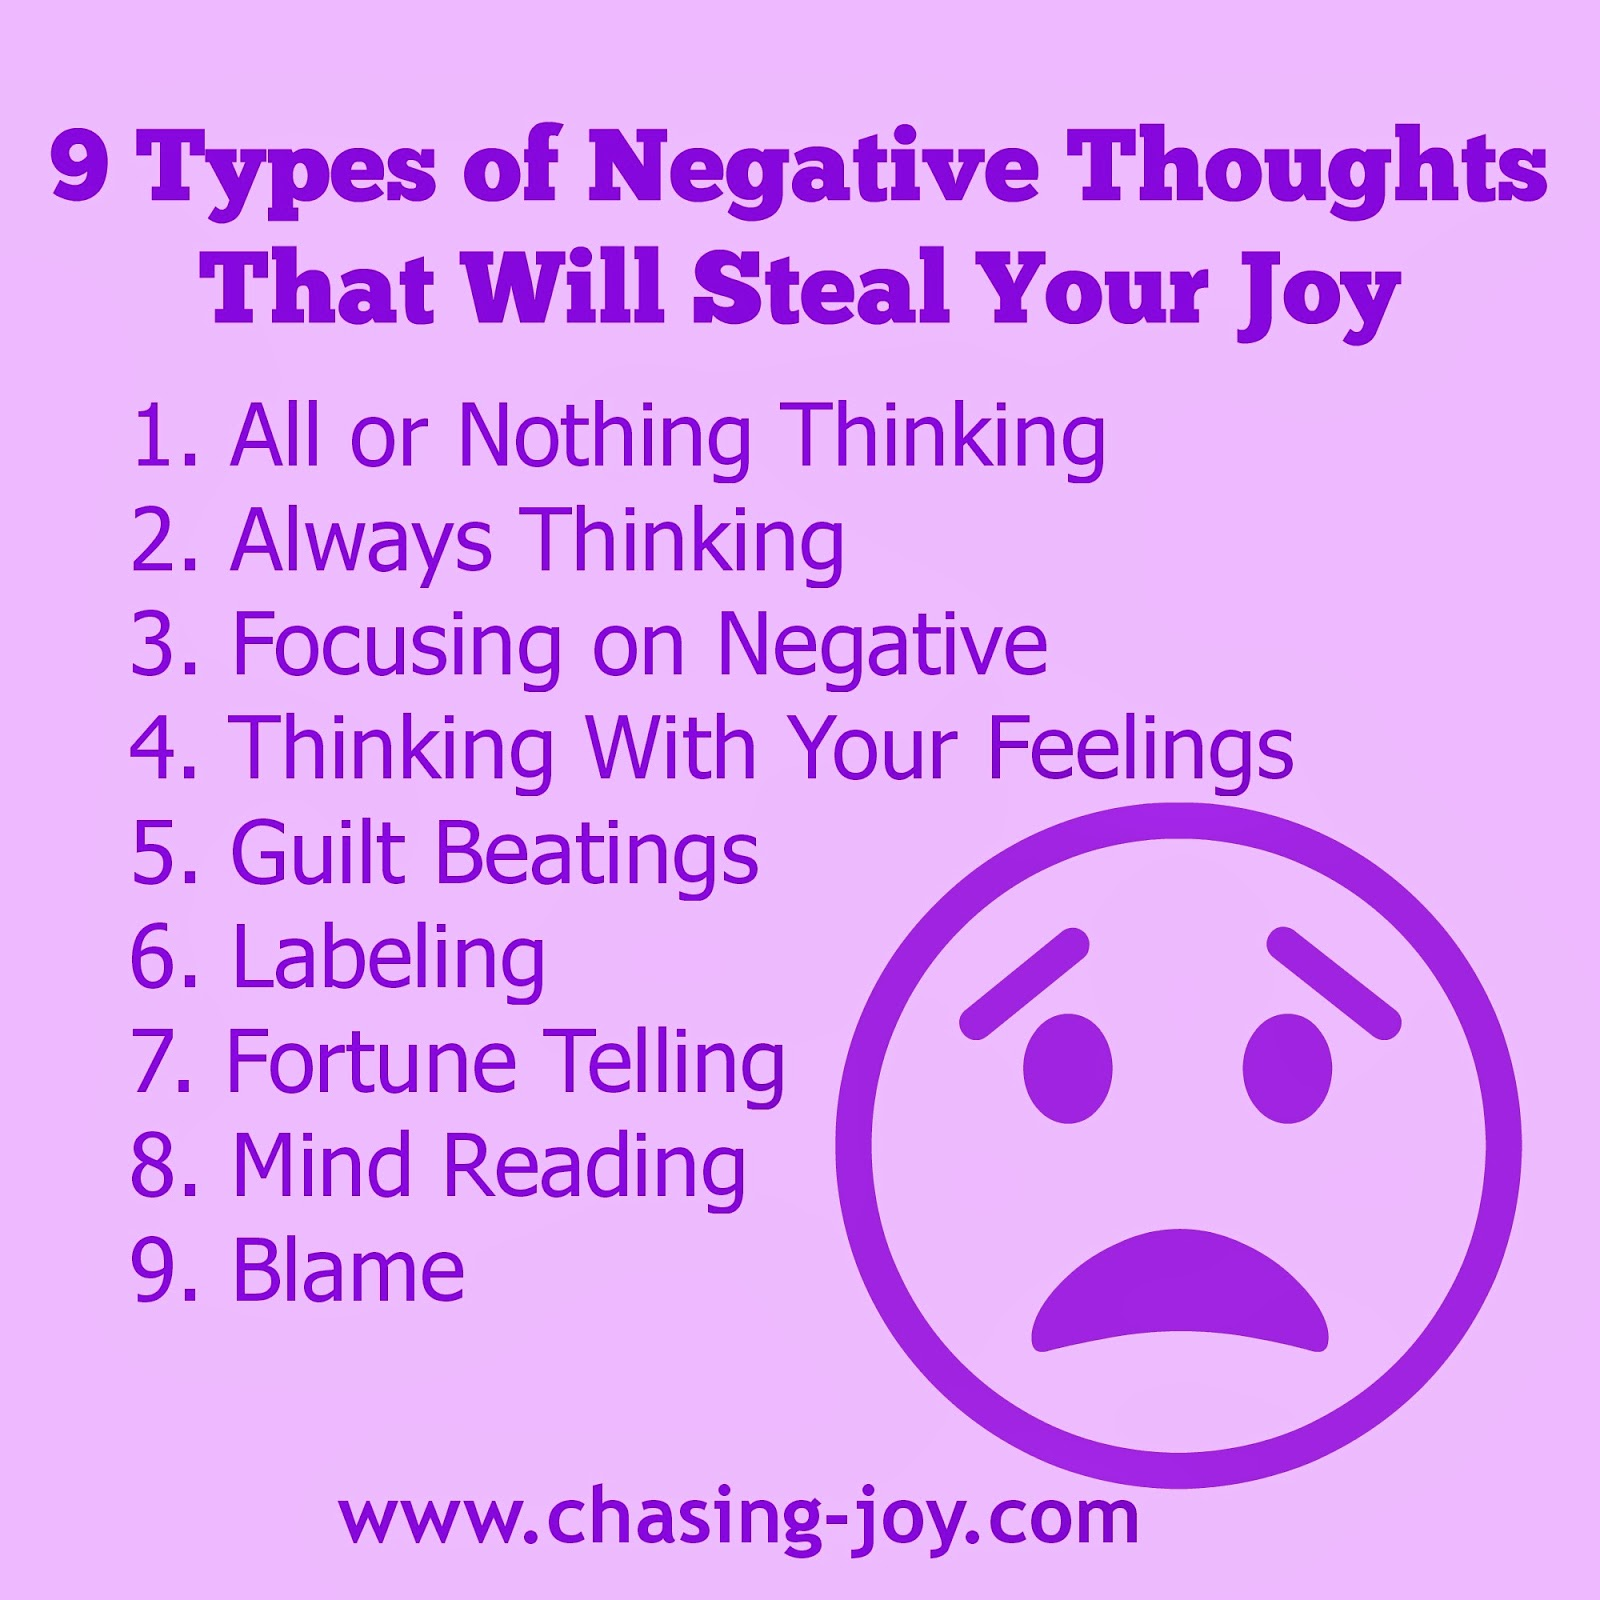 Managing Negative Thoughts Healthfly Resolve4you